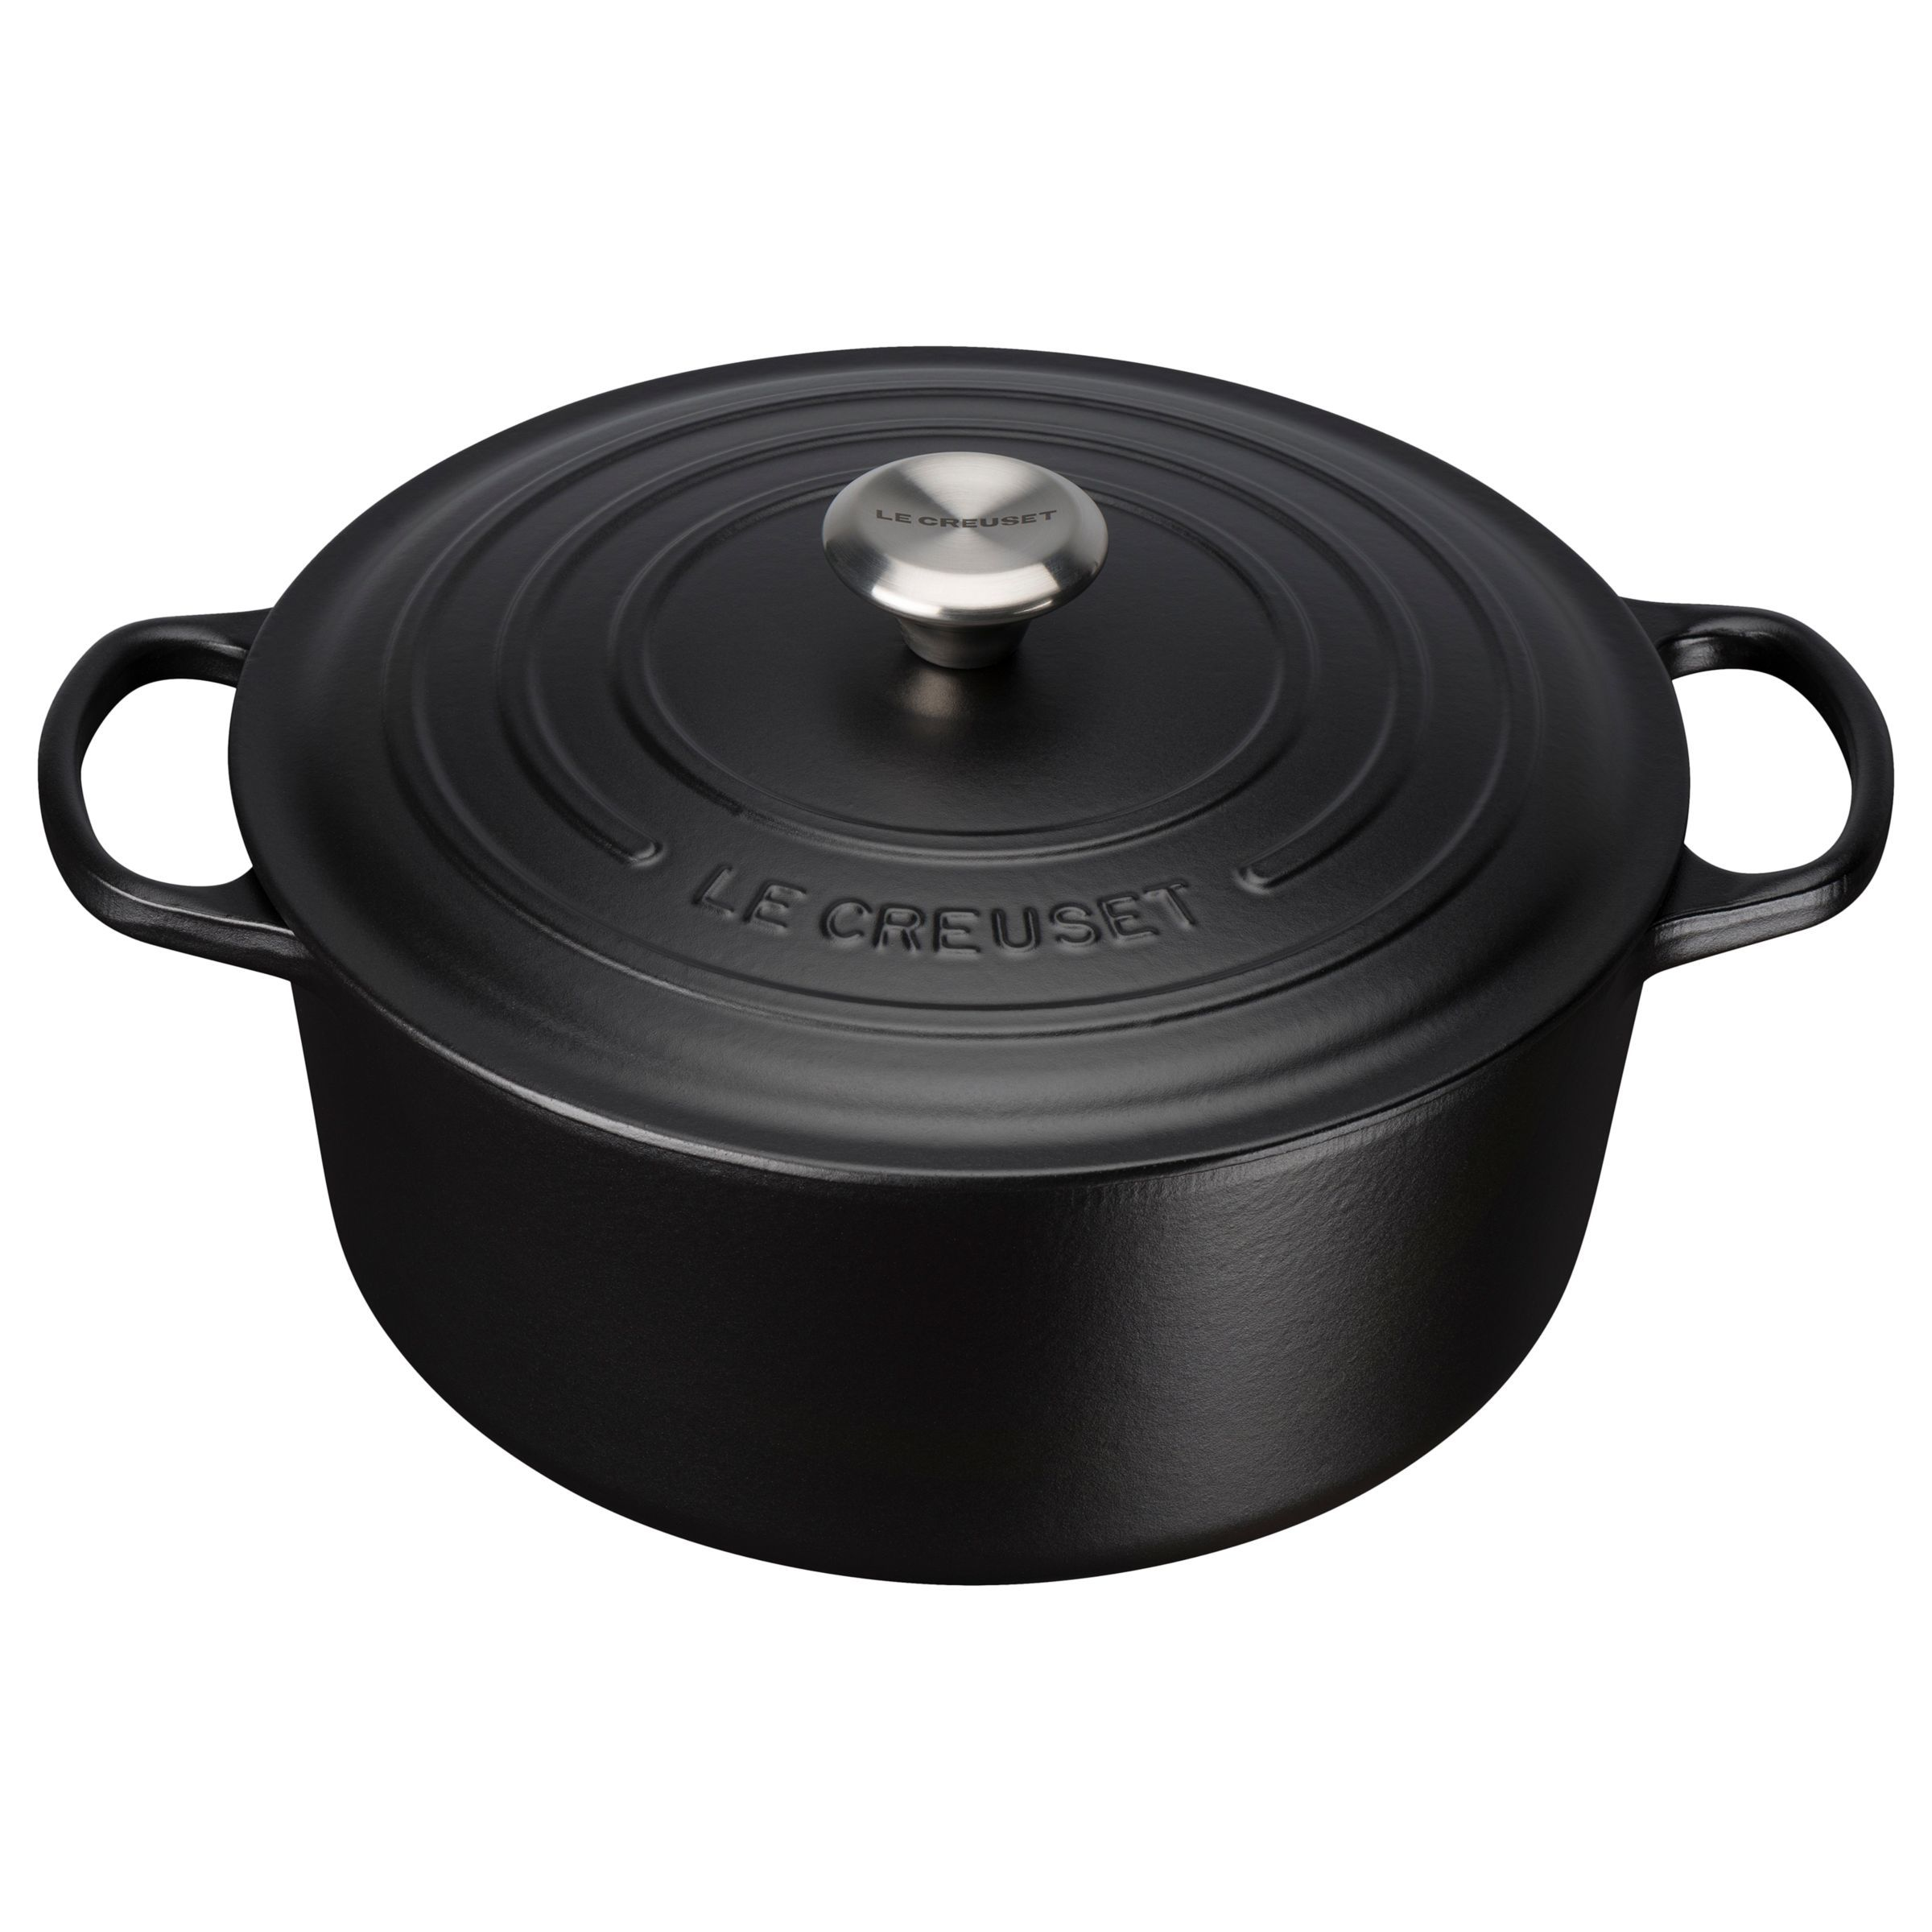 Le Creuset Signature Cast Iron Round Casserole Satin Black In